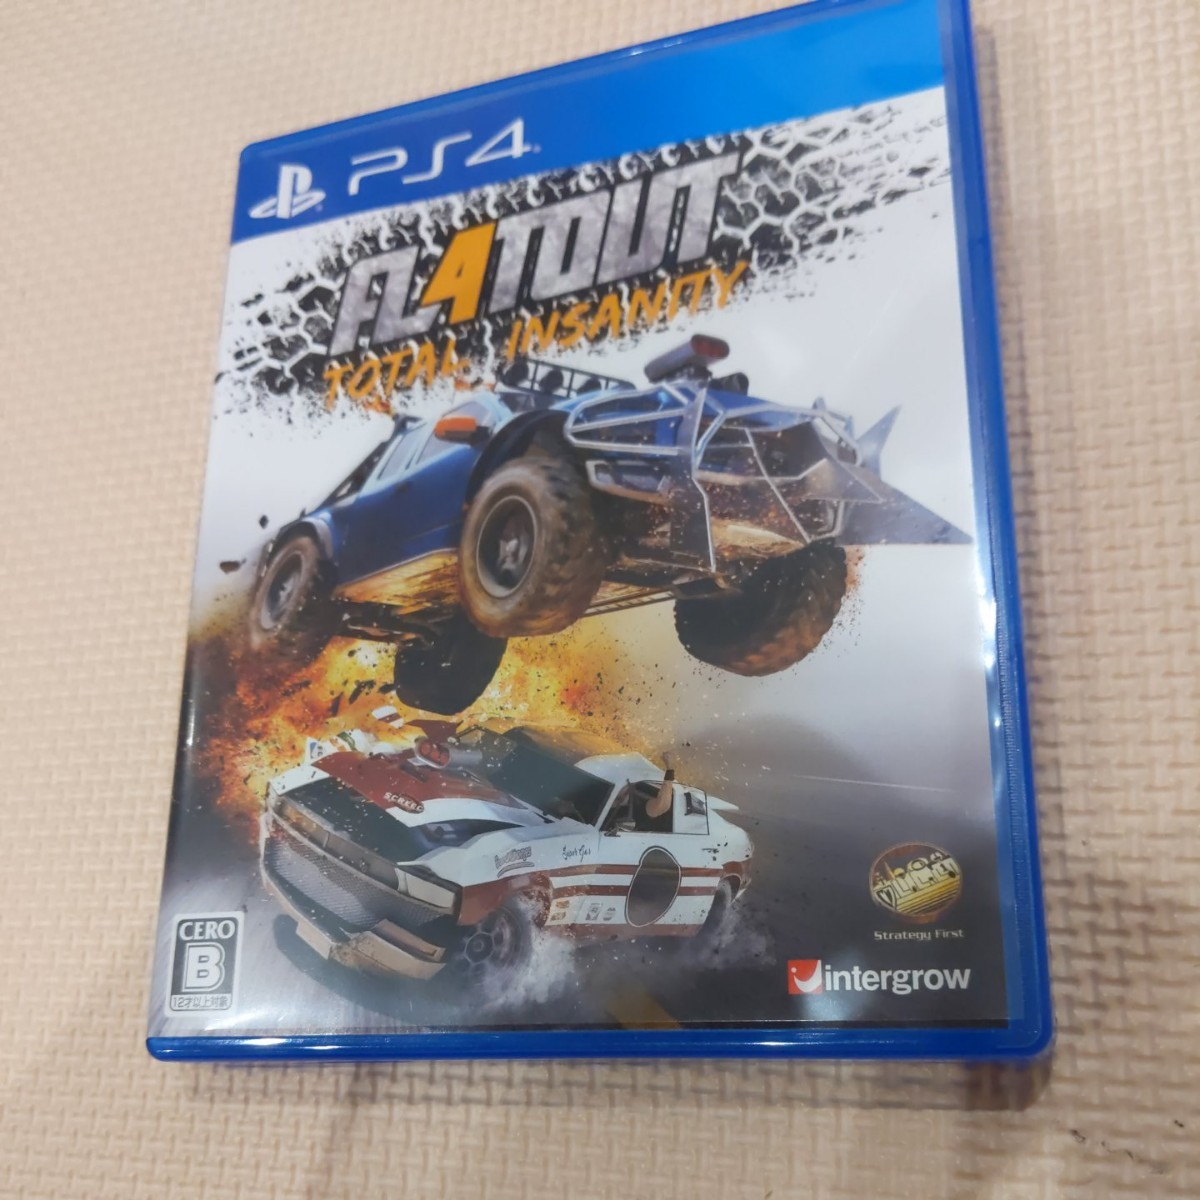 【PS4】 FlatOut 4: Total Insanity PS4